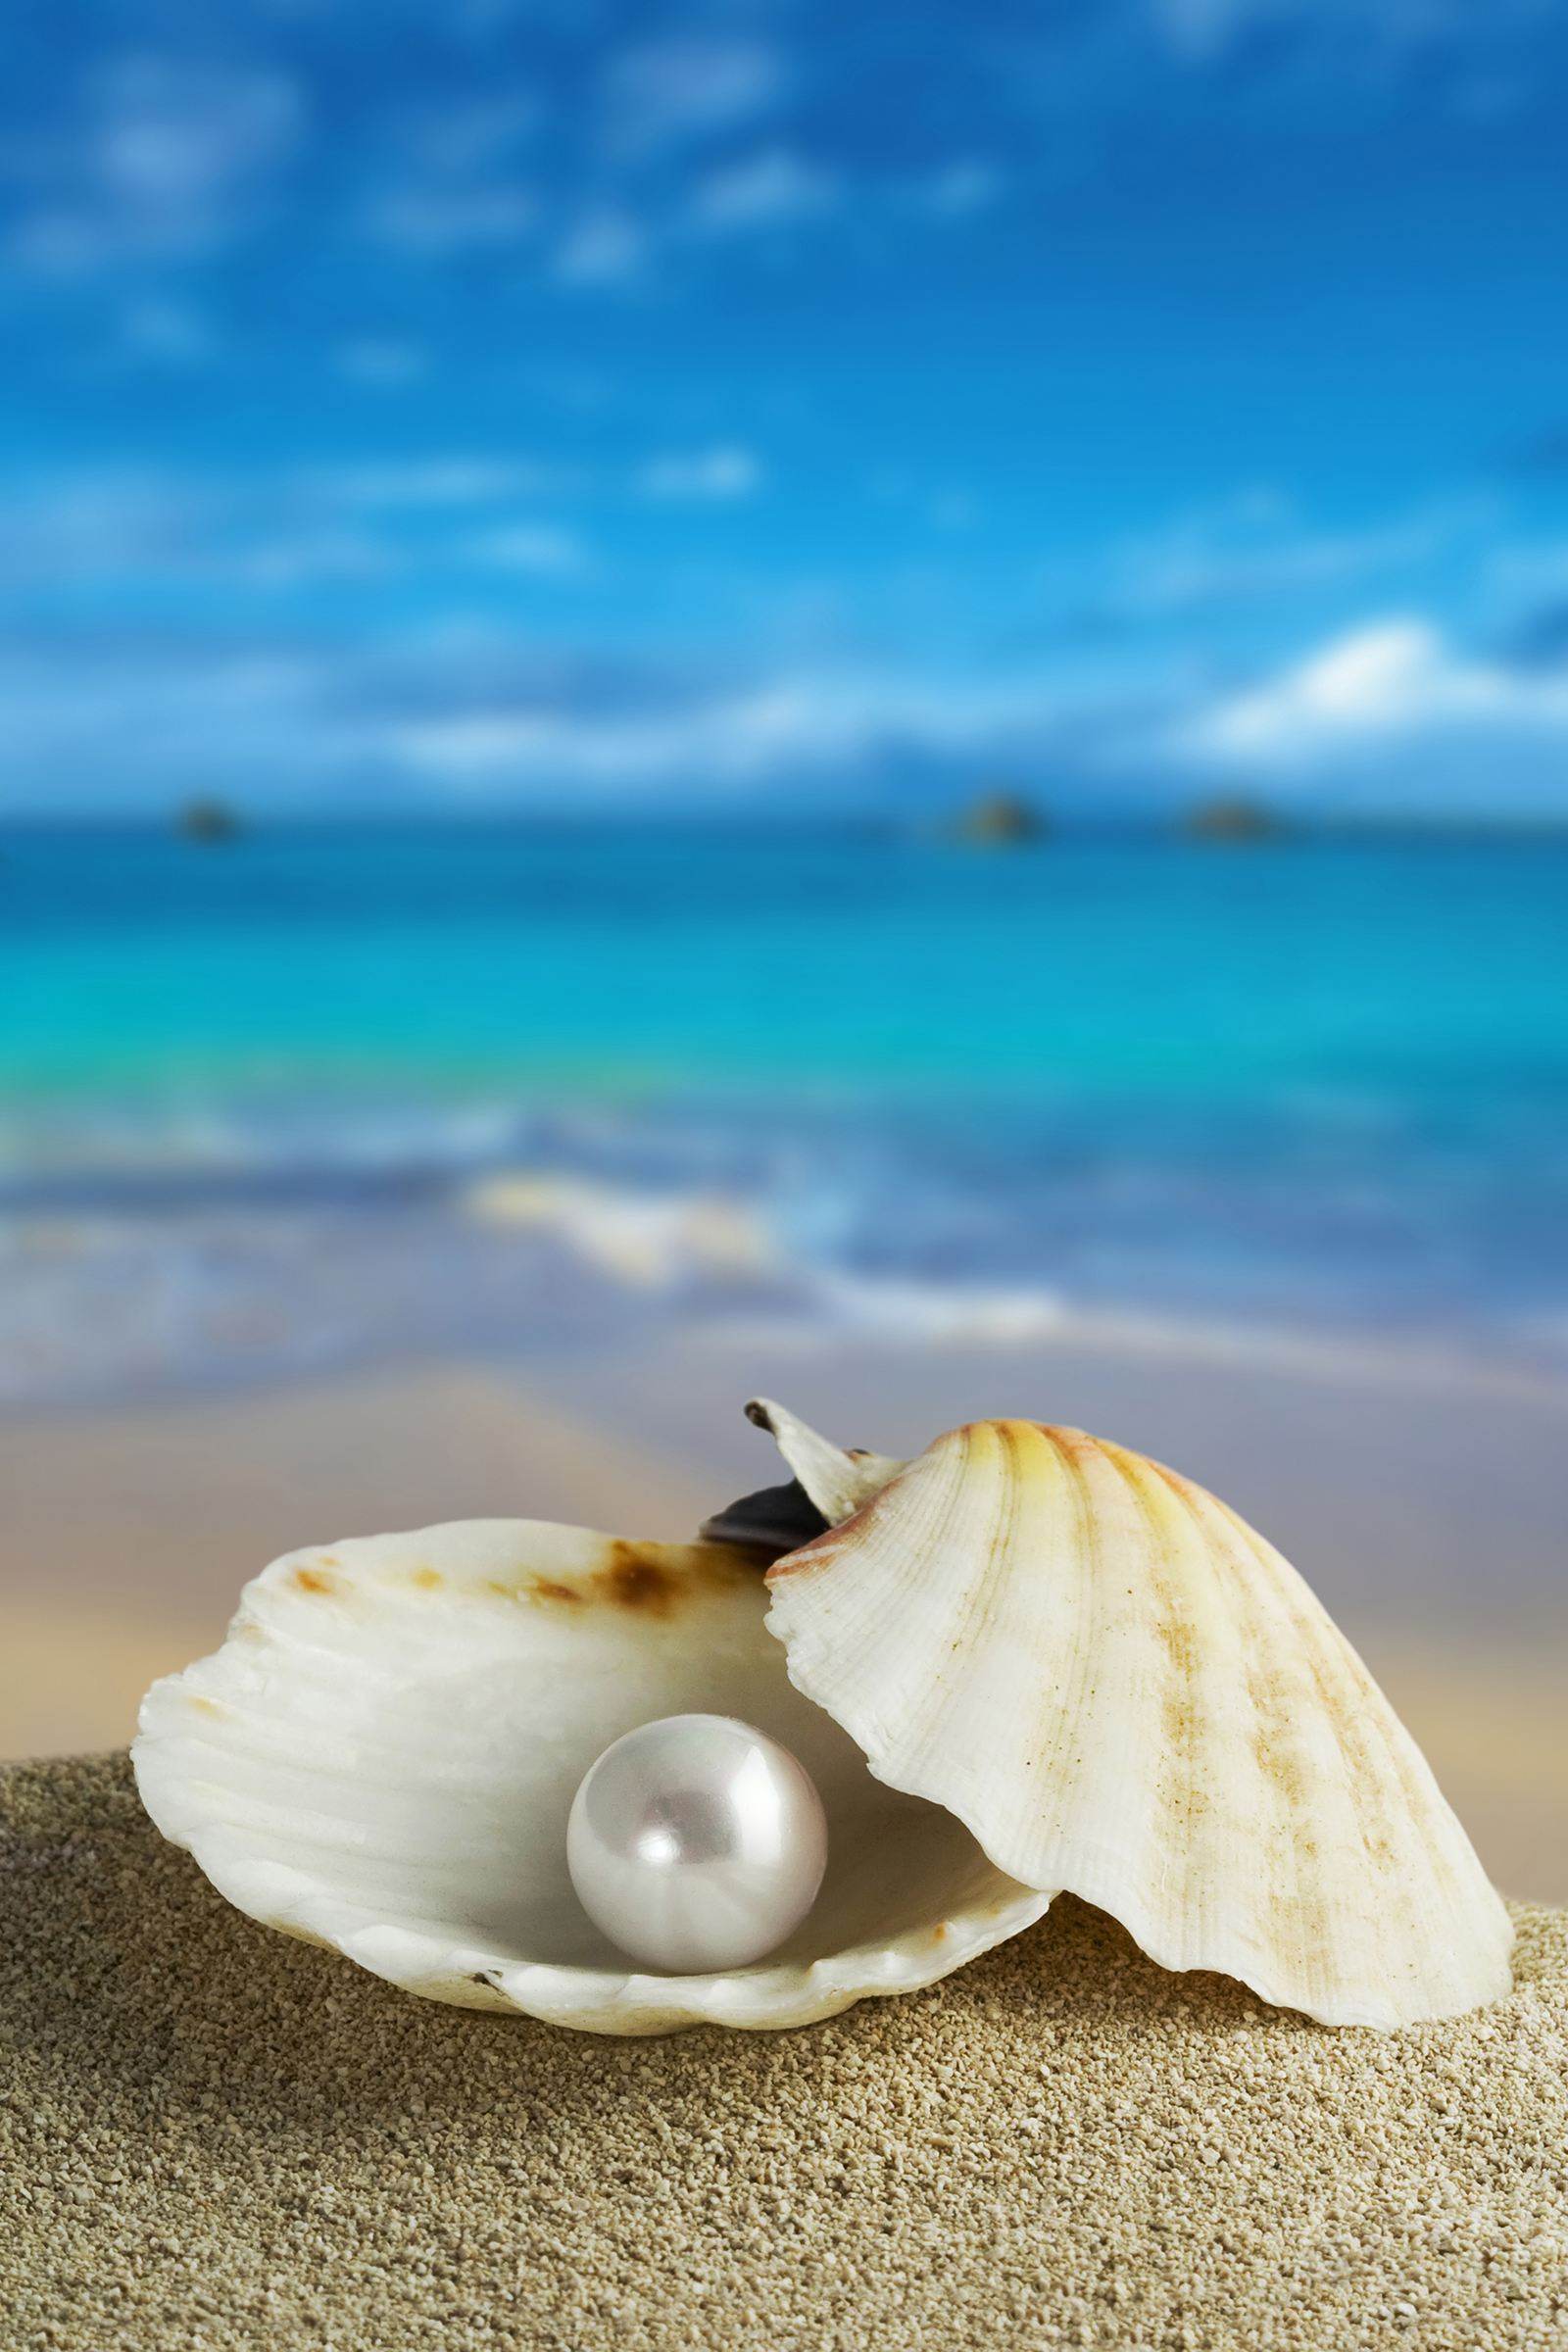 Seashells on the beach by the sea, pearls 55606